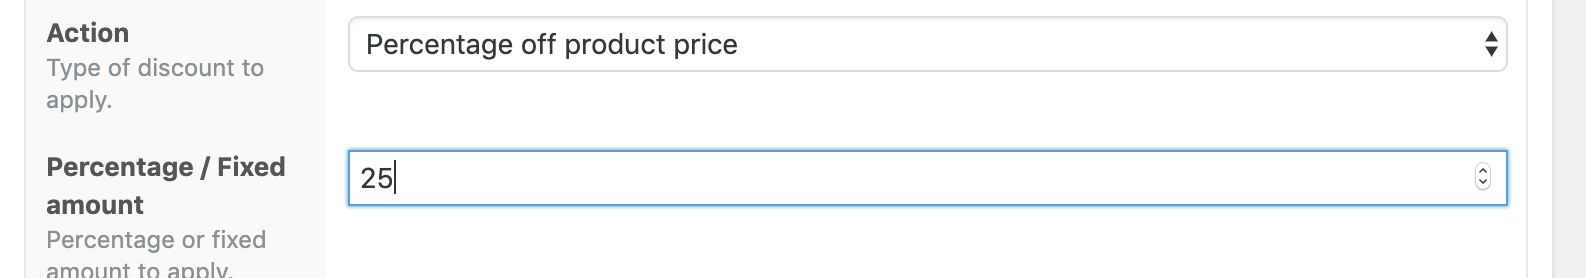 Percentage off product price Action